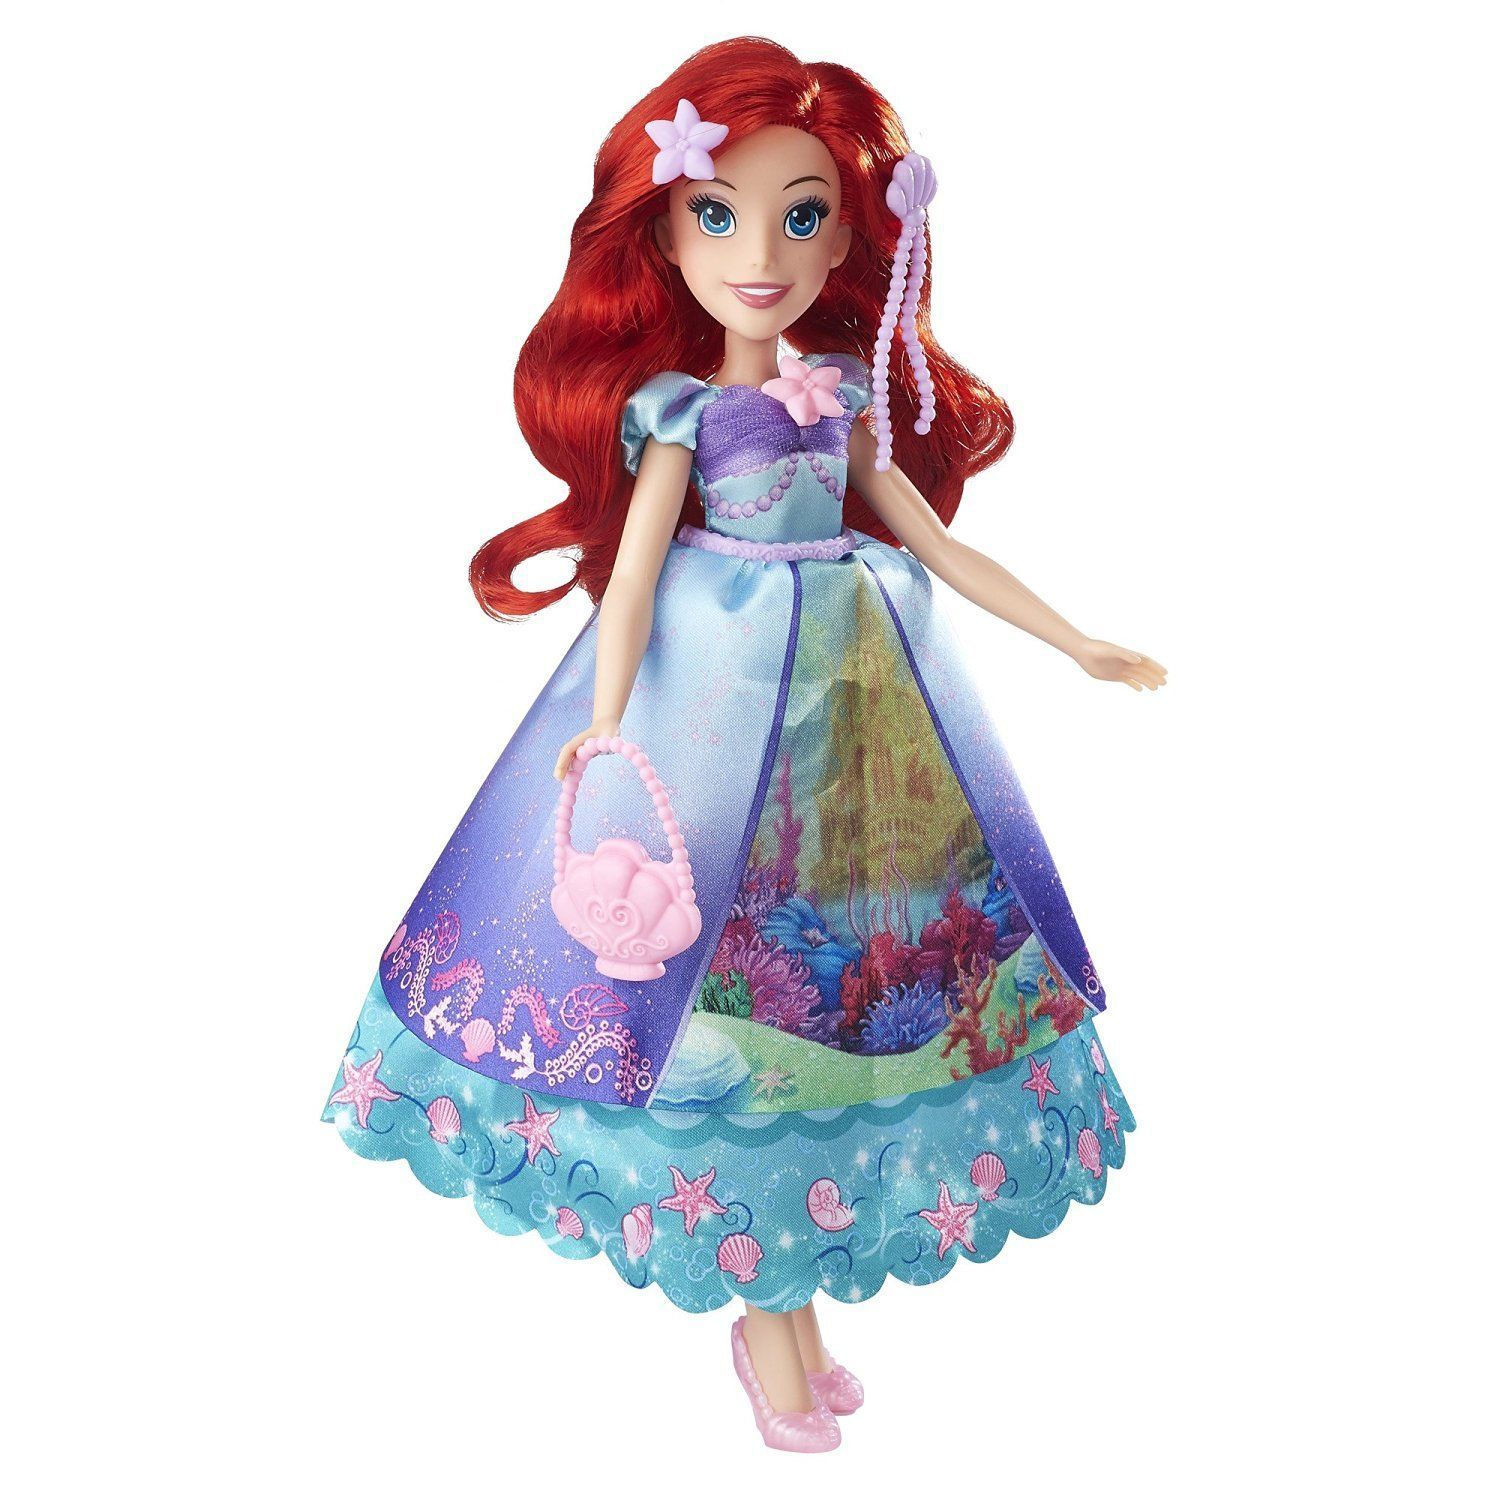 Image 2 of Disney Princess Ariel Layer n' Style Doll in Blue by Hasbro